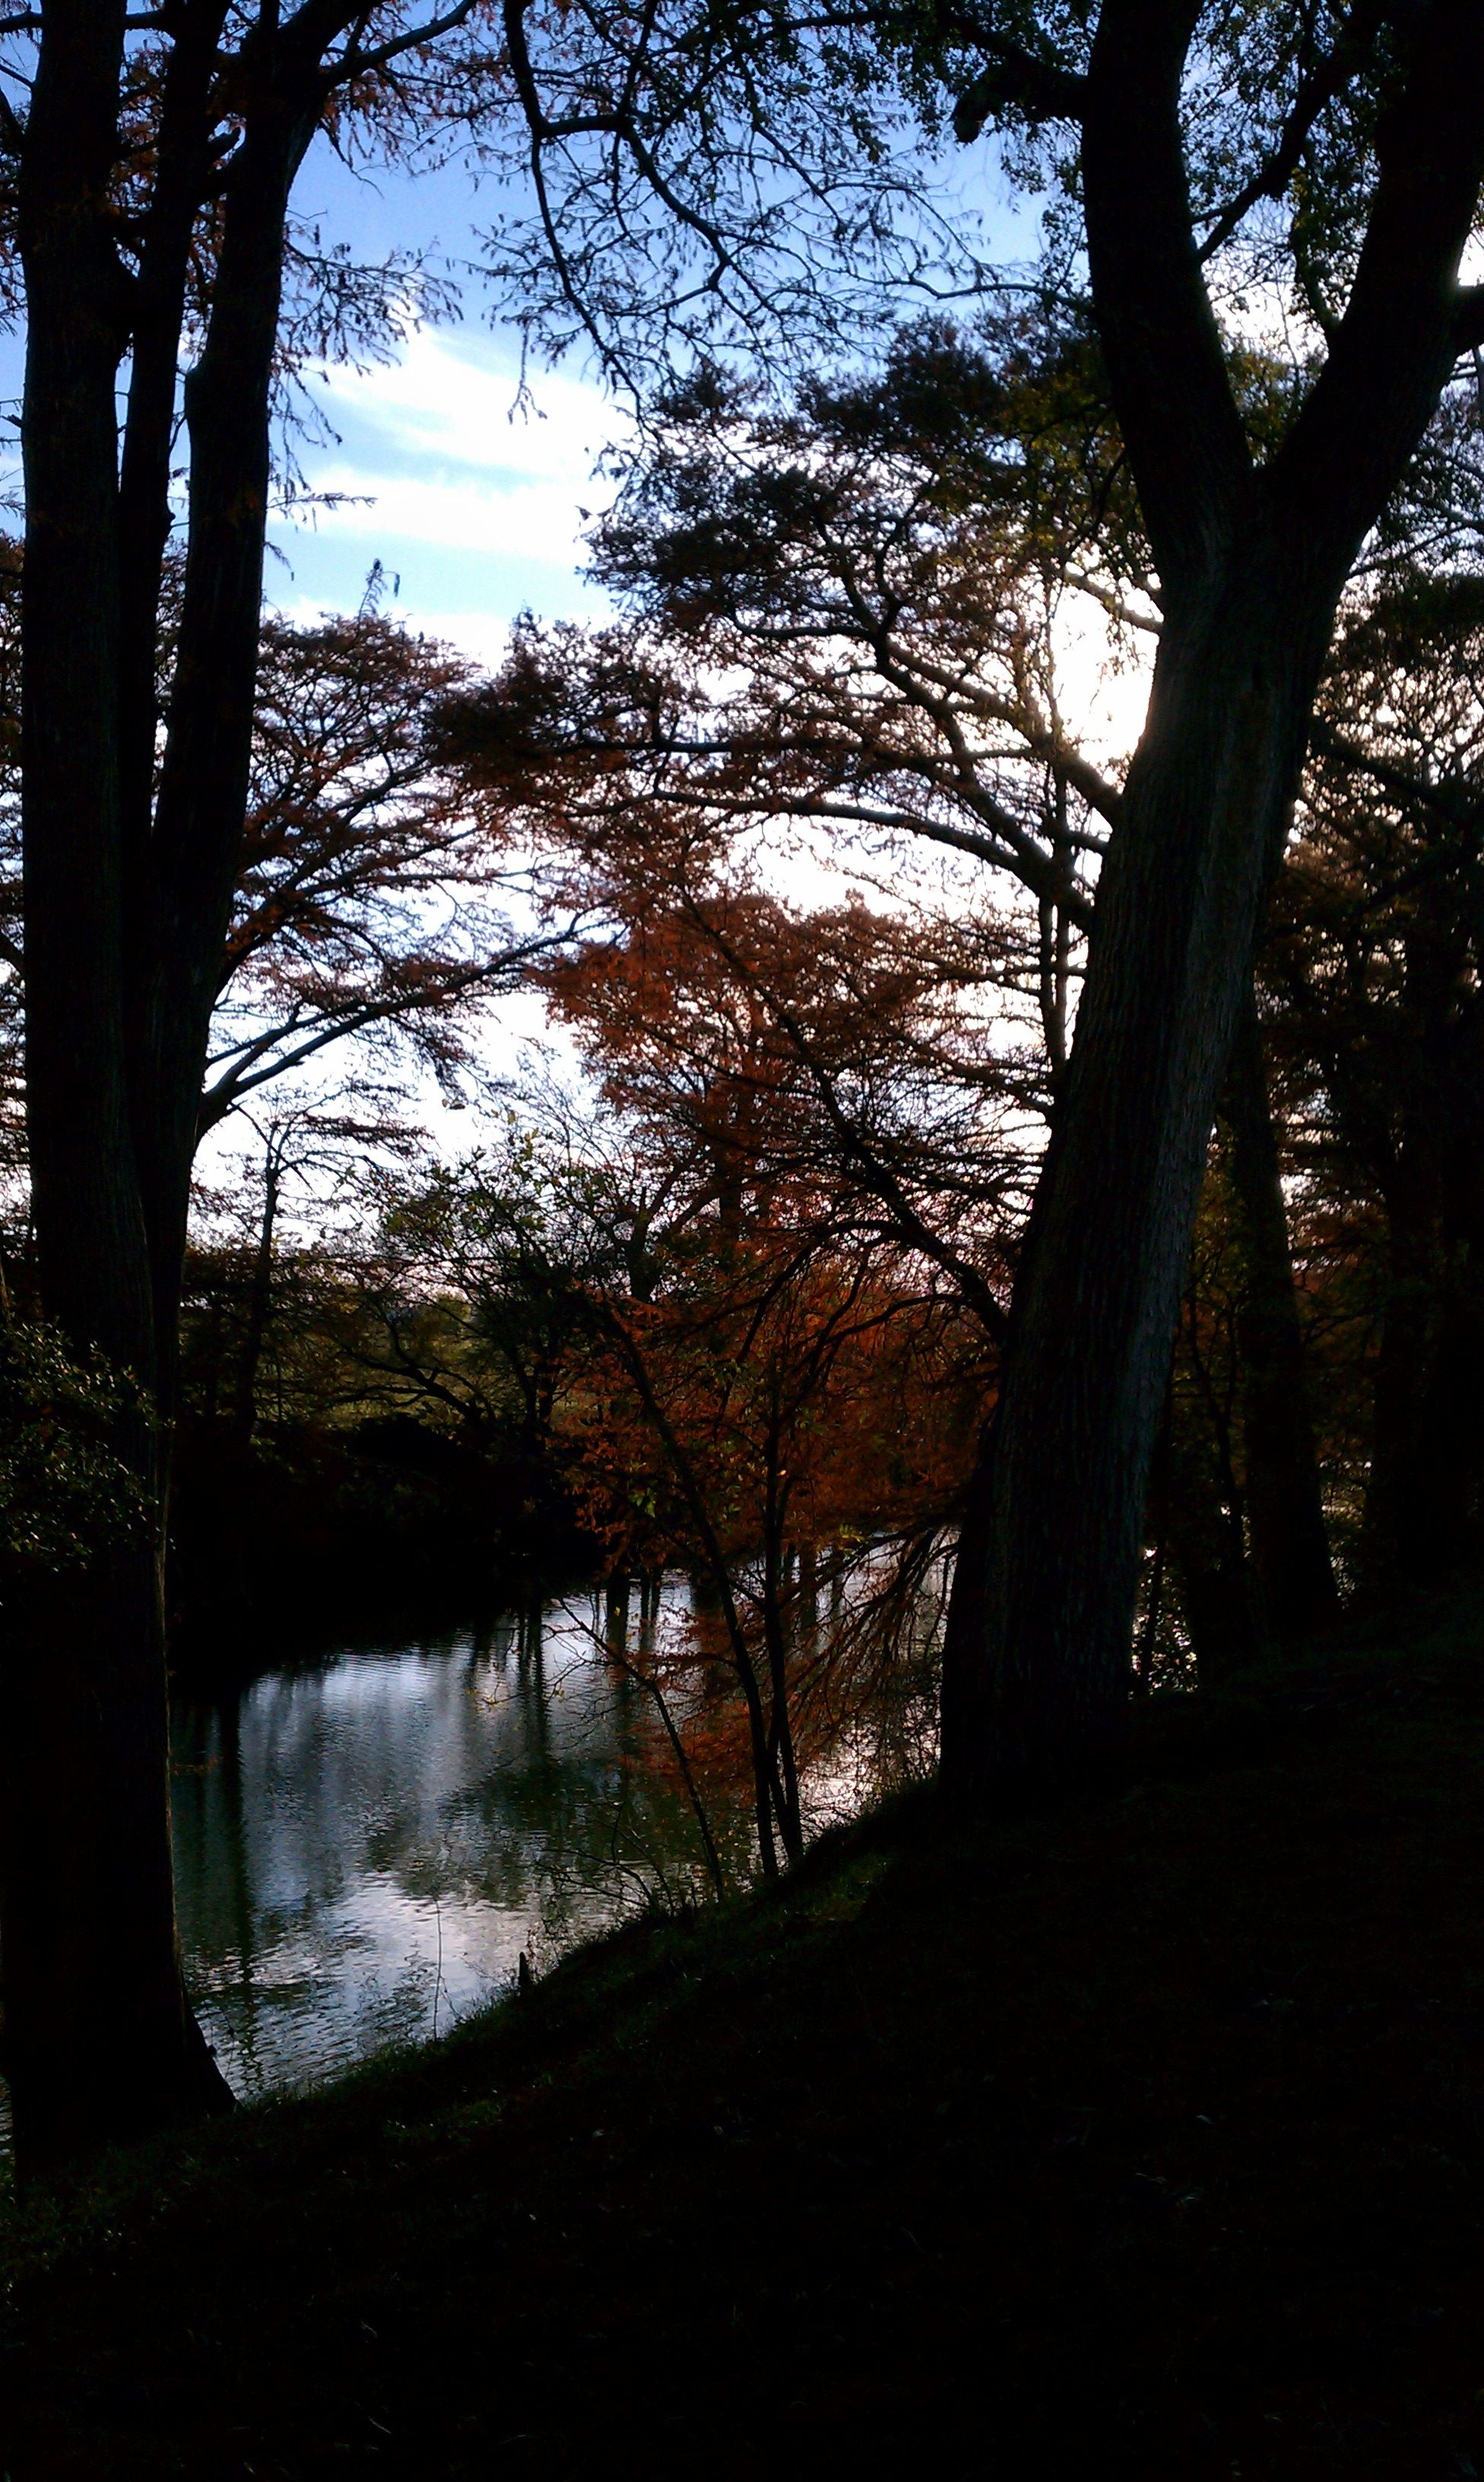 Guadalupe river at sisterdalecoffee hollow guadalupe